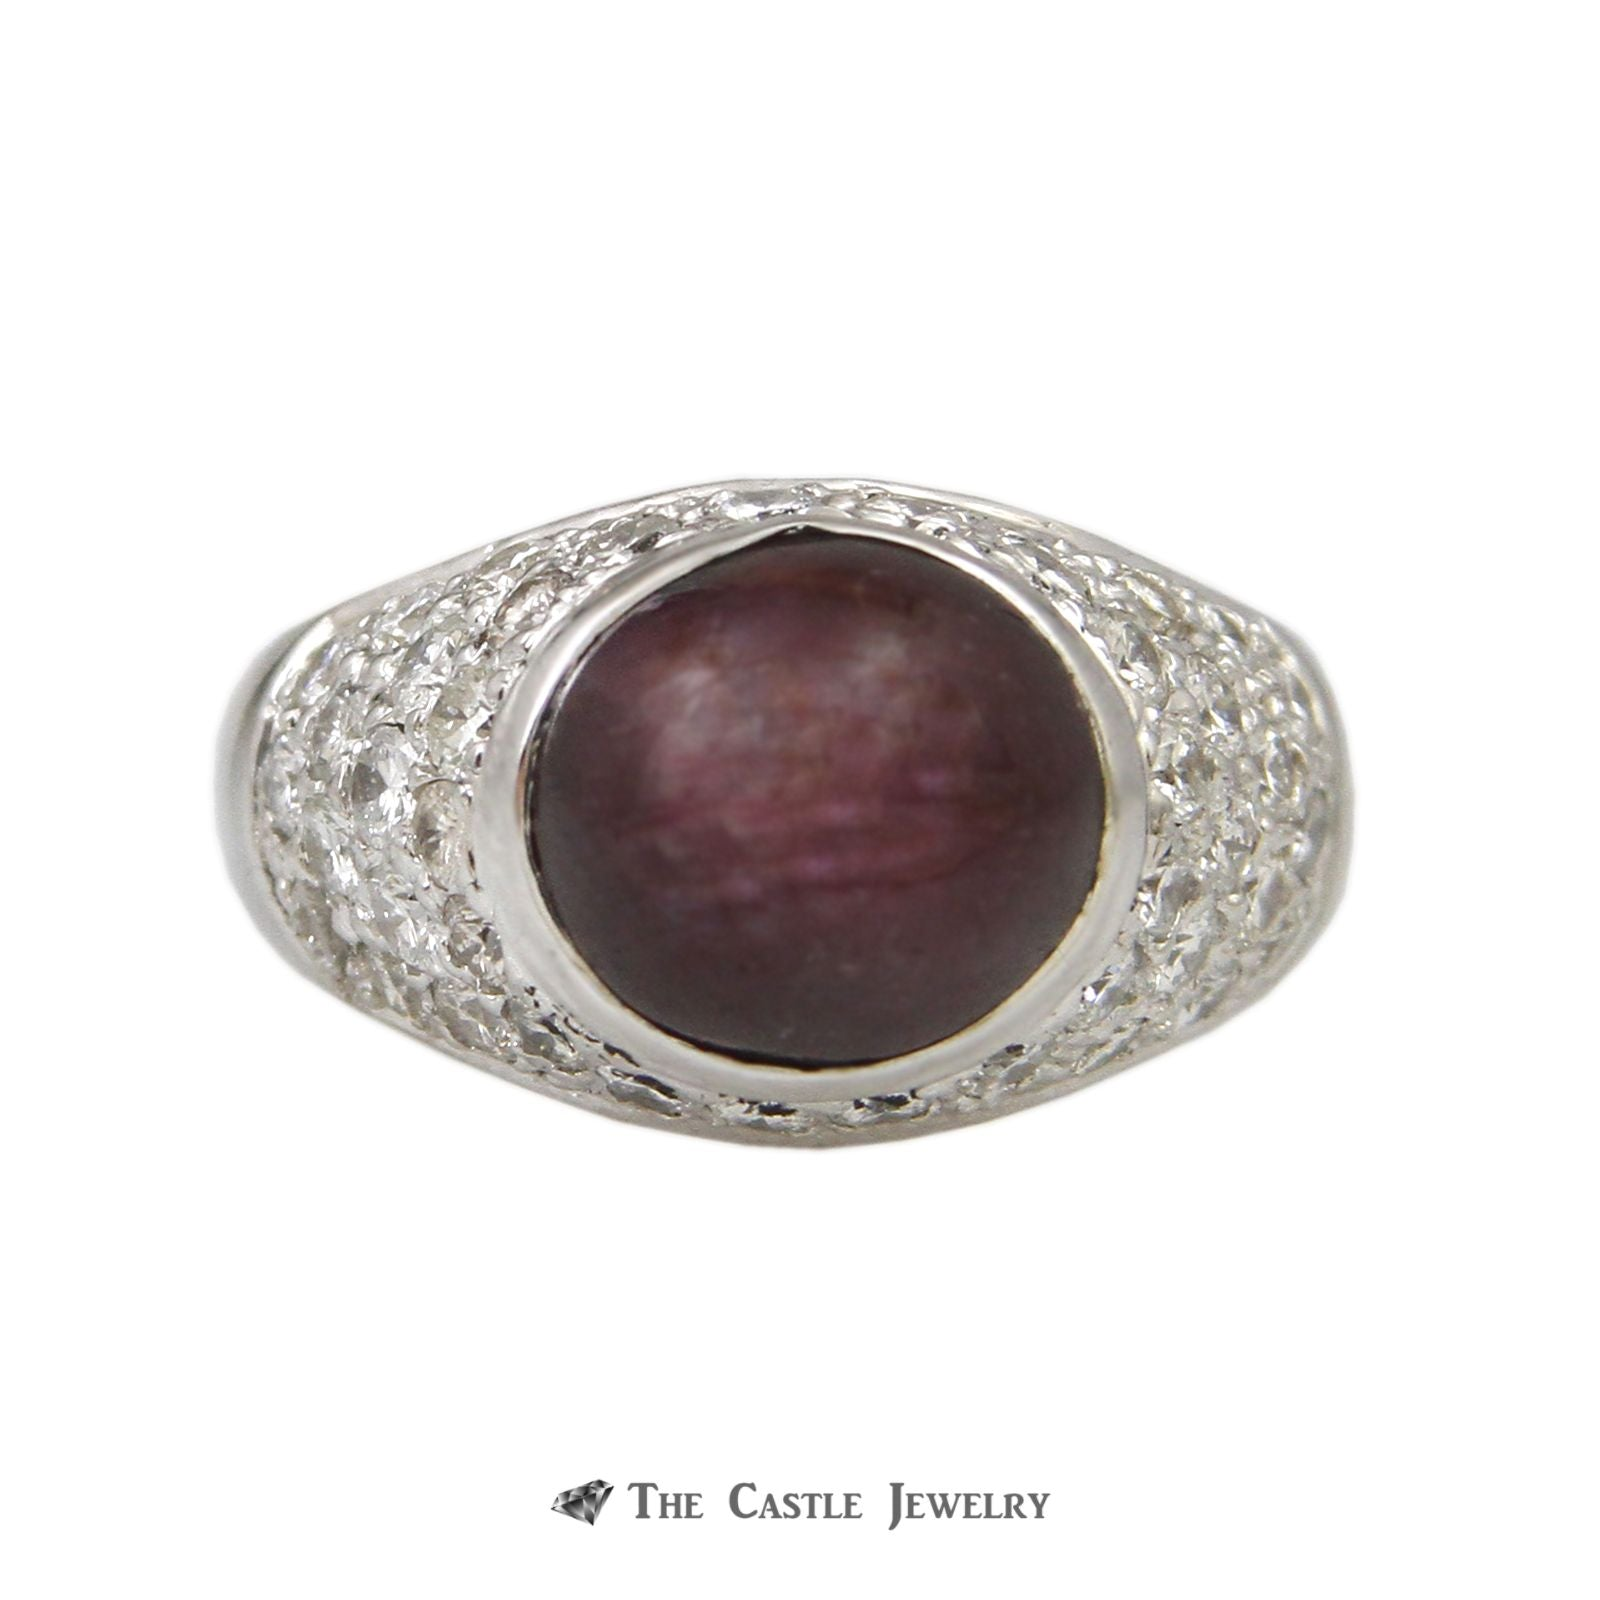 Vintage Cabochon Ruby Ring in 1.50cttw Pave Round Diamond Mounting 14K